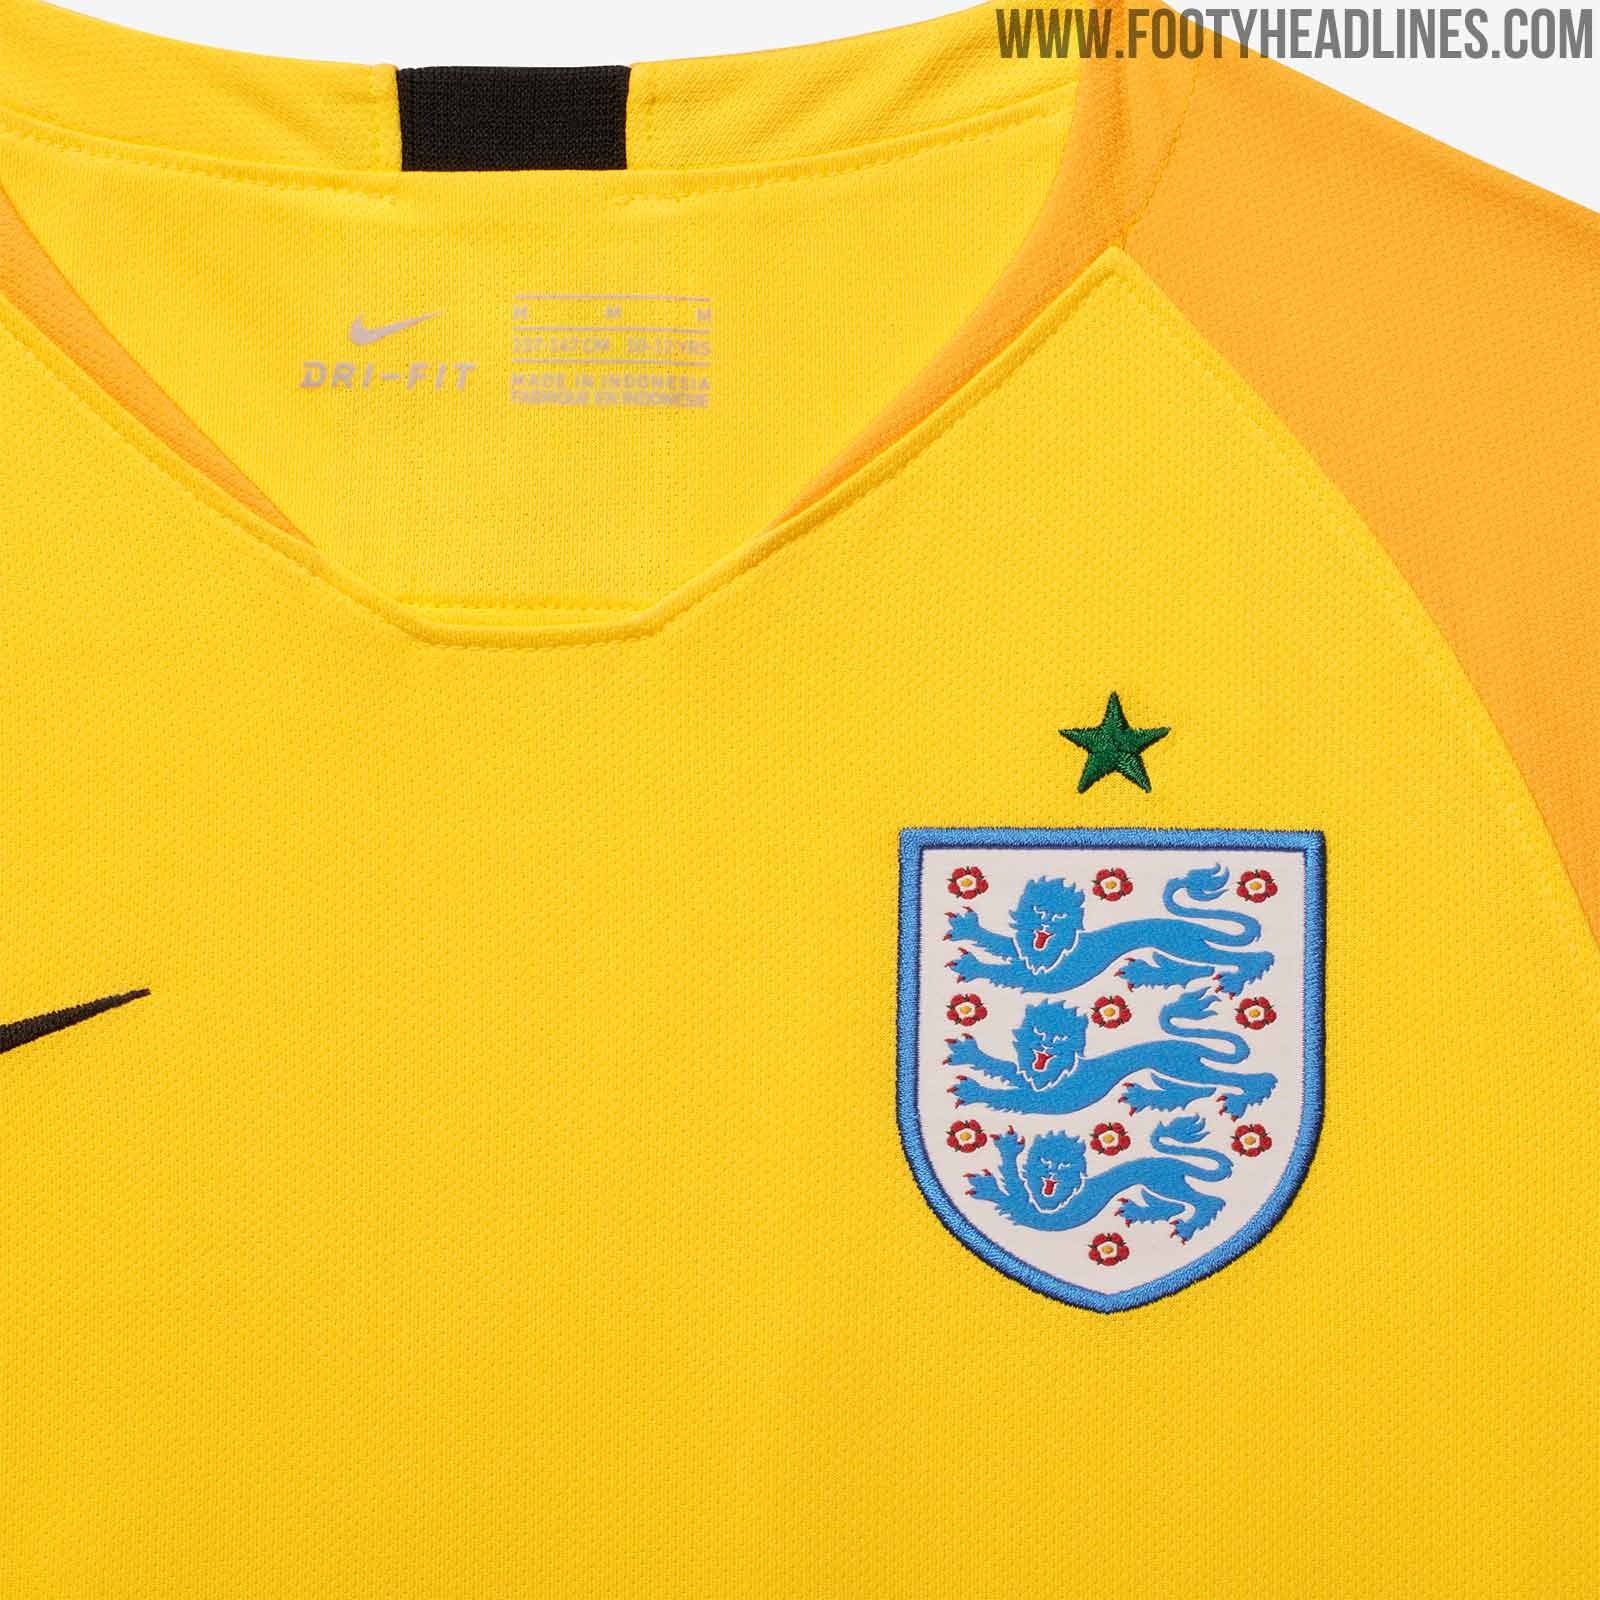 f3a397d96fa Oddly enough, the star above the crest is green to mirror the sleeve  graphic. What do you think of the England 2018 World Cup goalkeeper kit?